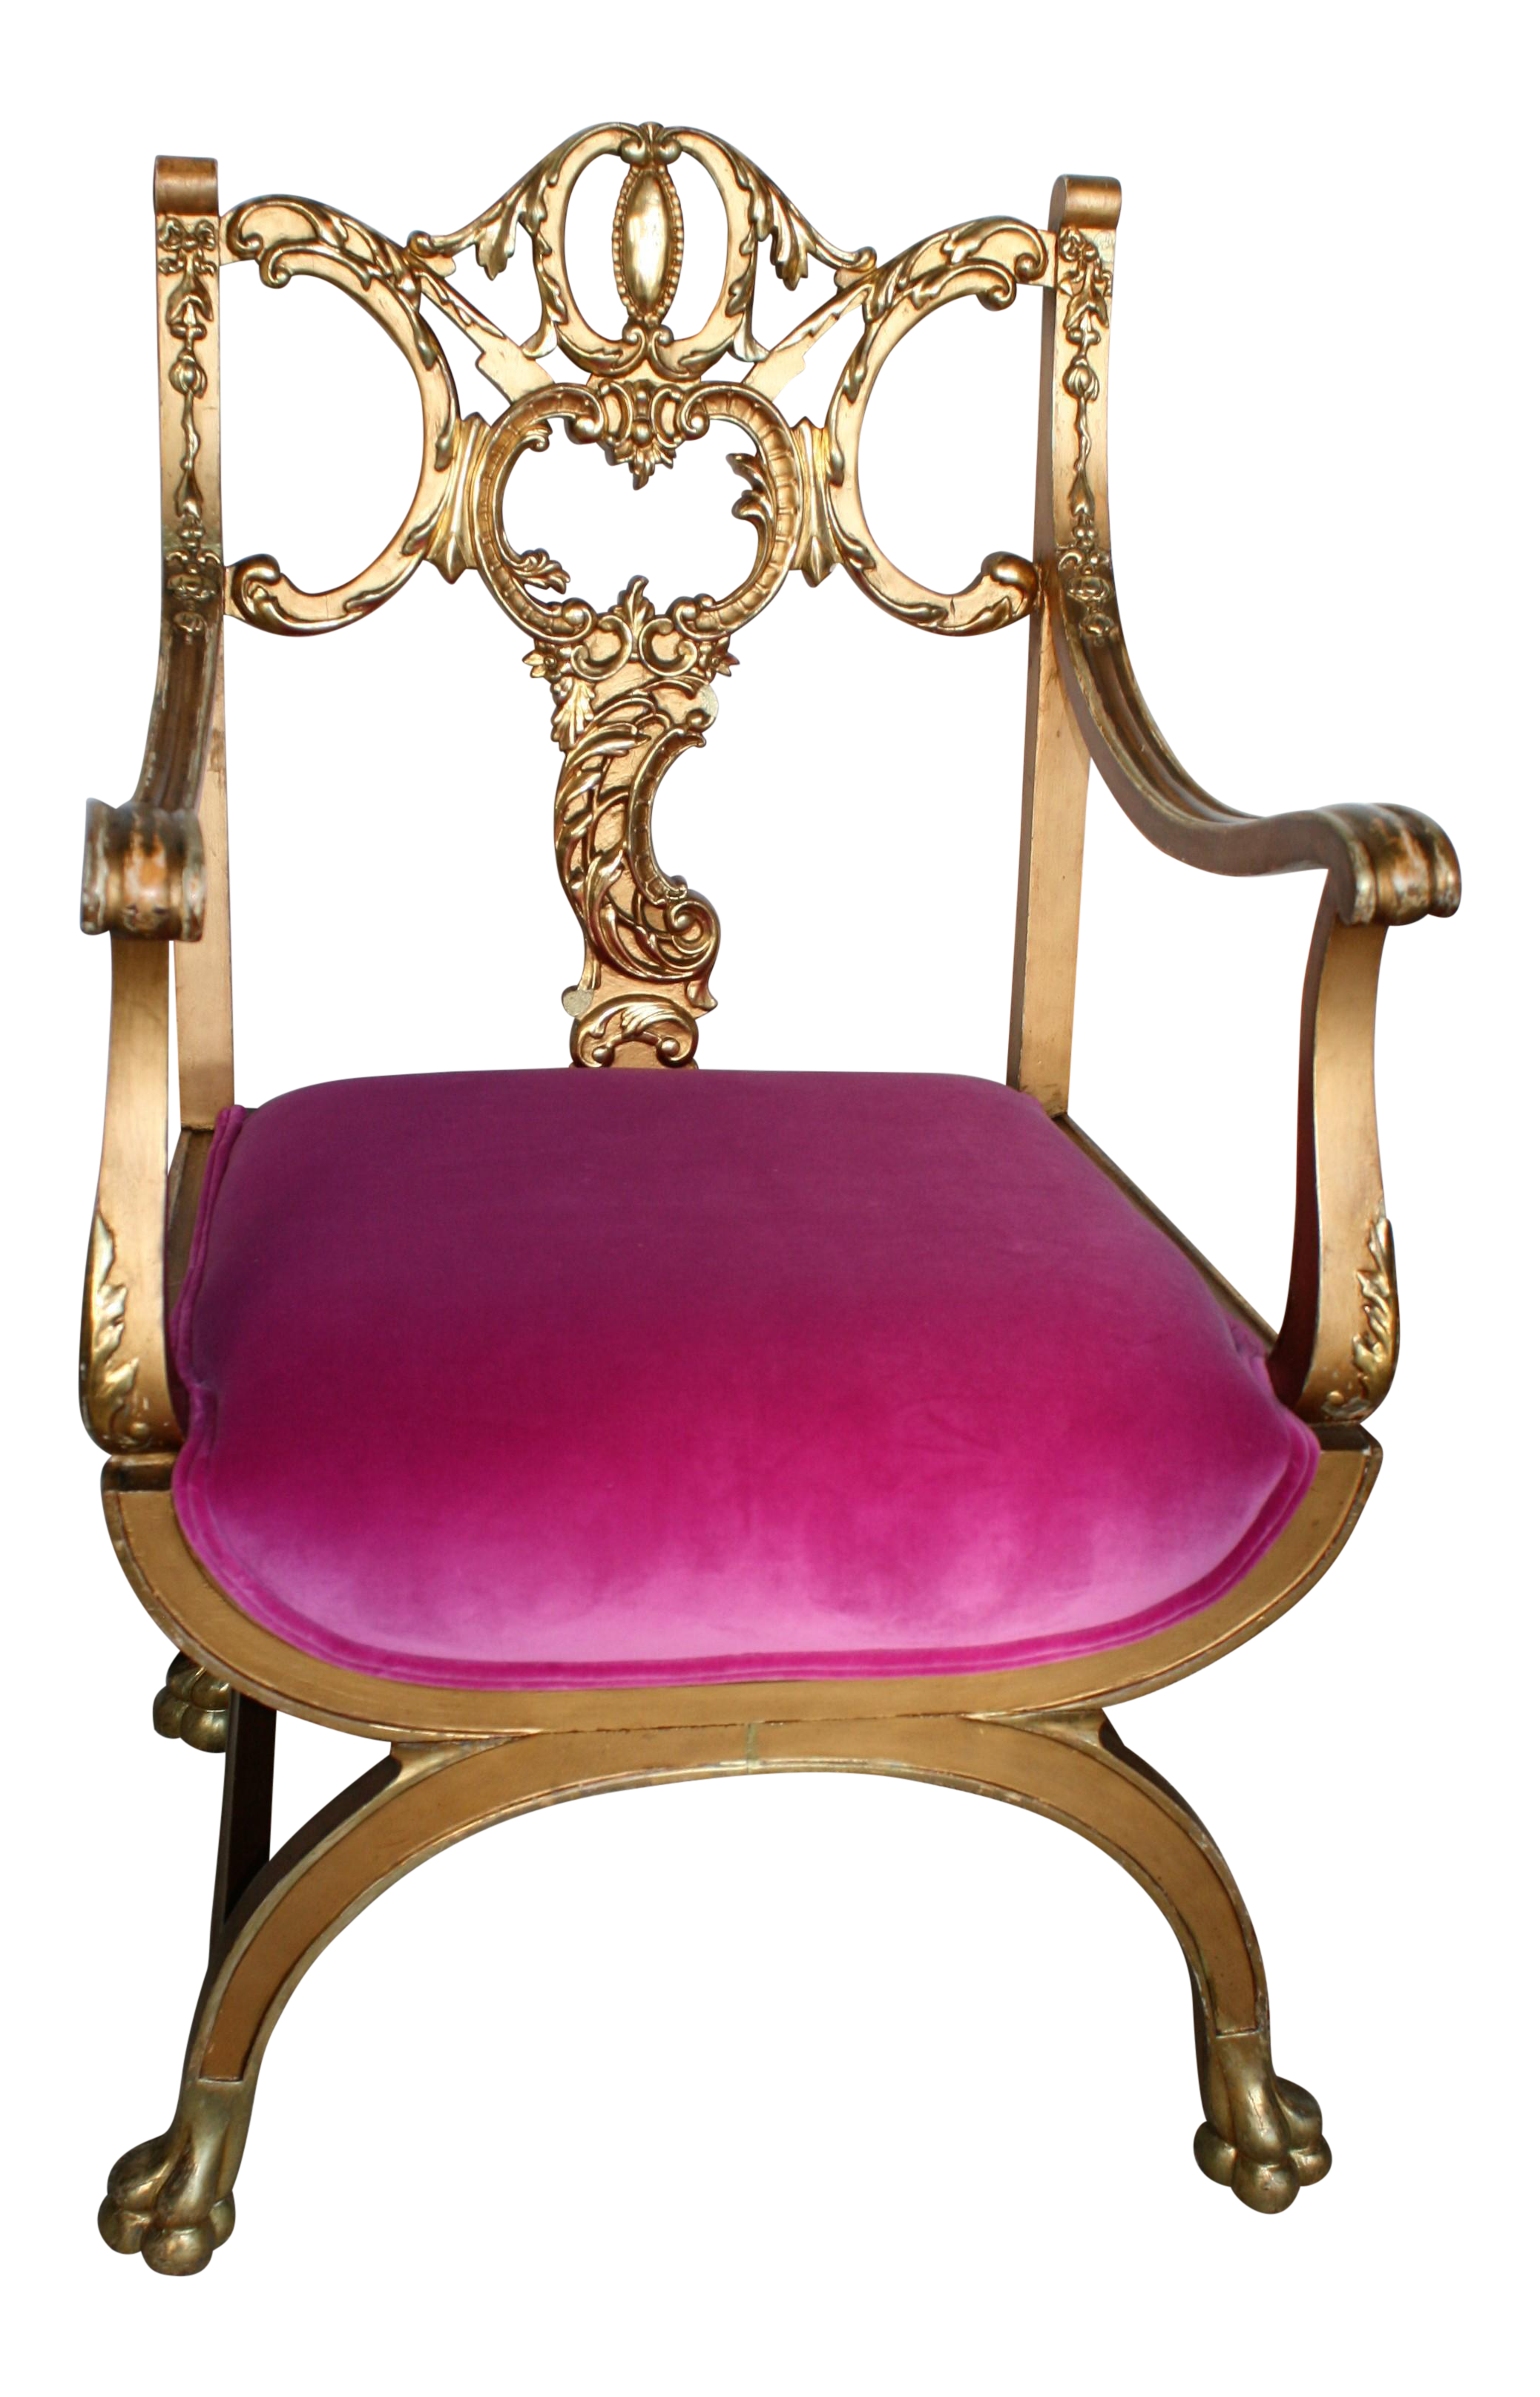 Antique princess chair - Image Of Pink And Gold Renaissance Style Princess Chair